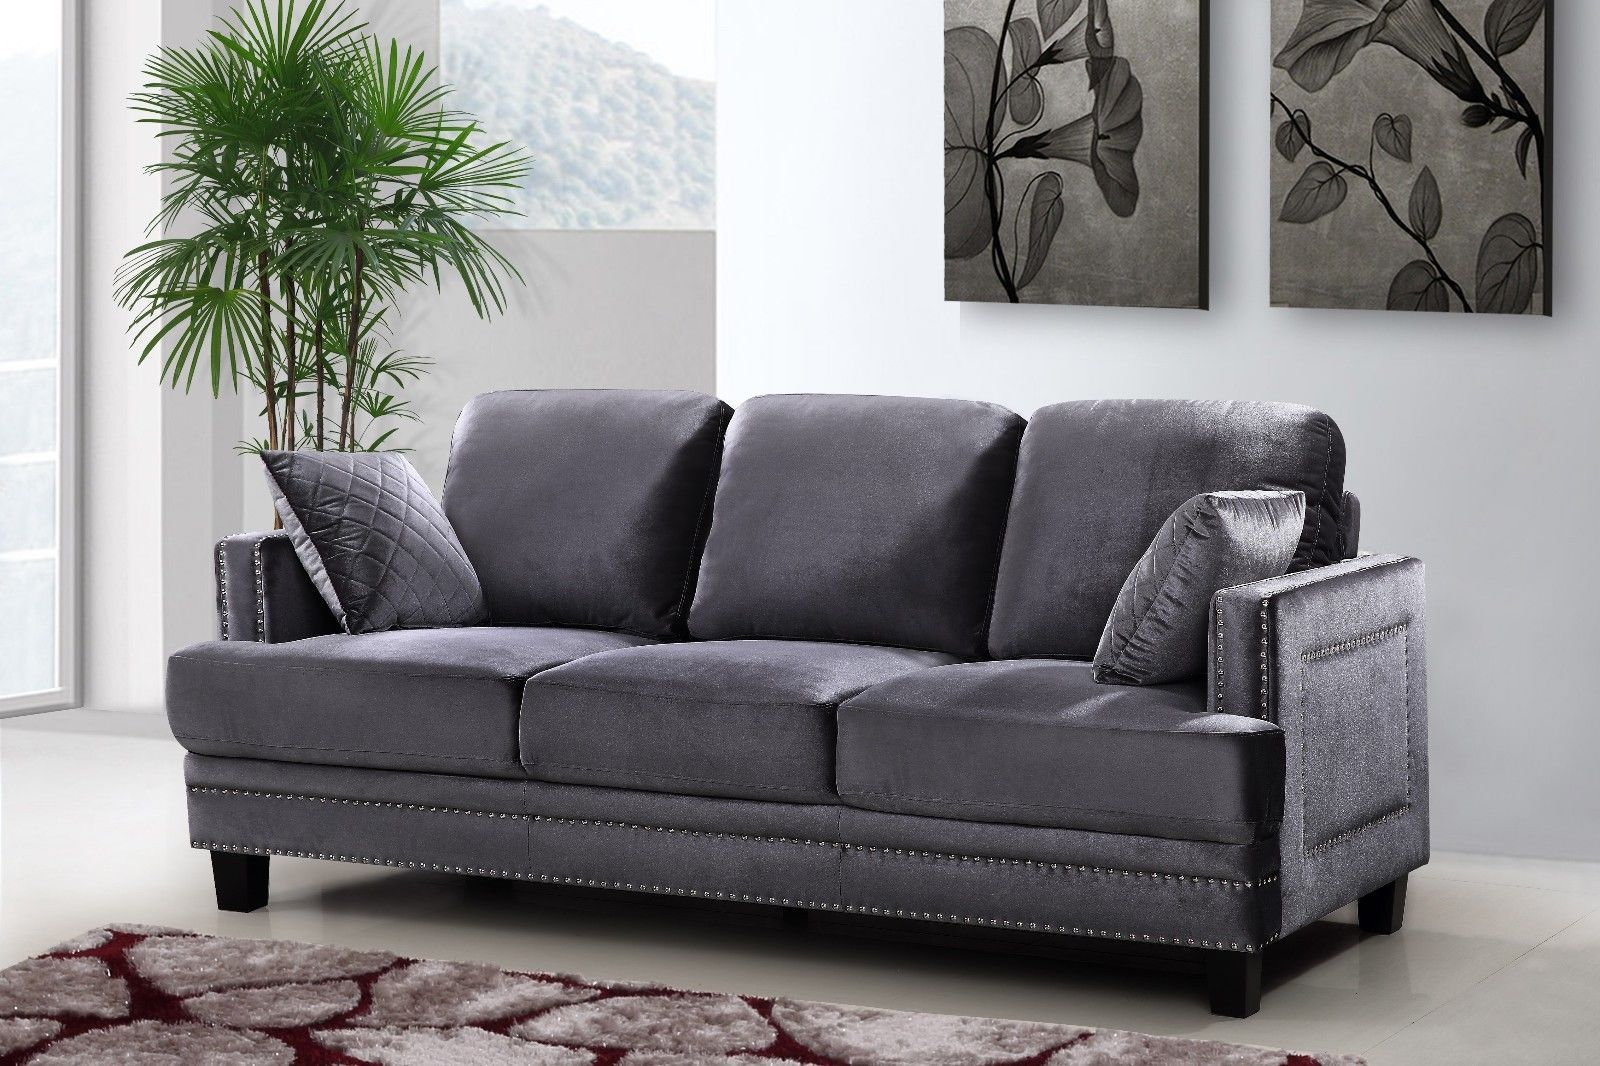 Meridian 655 Grey Velvet Leather Living Room Sofa Chic Contemporary Style